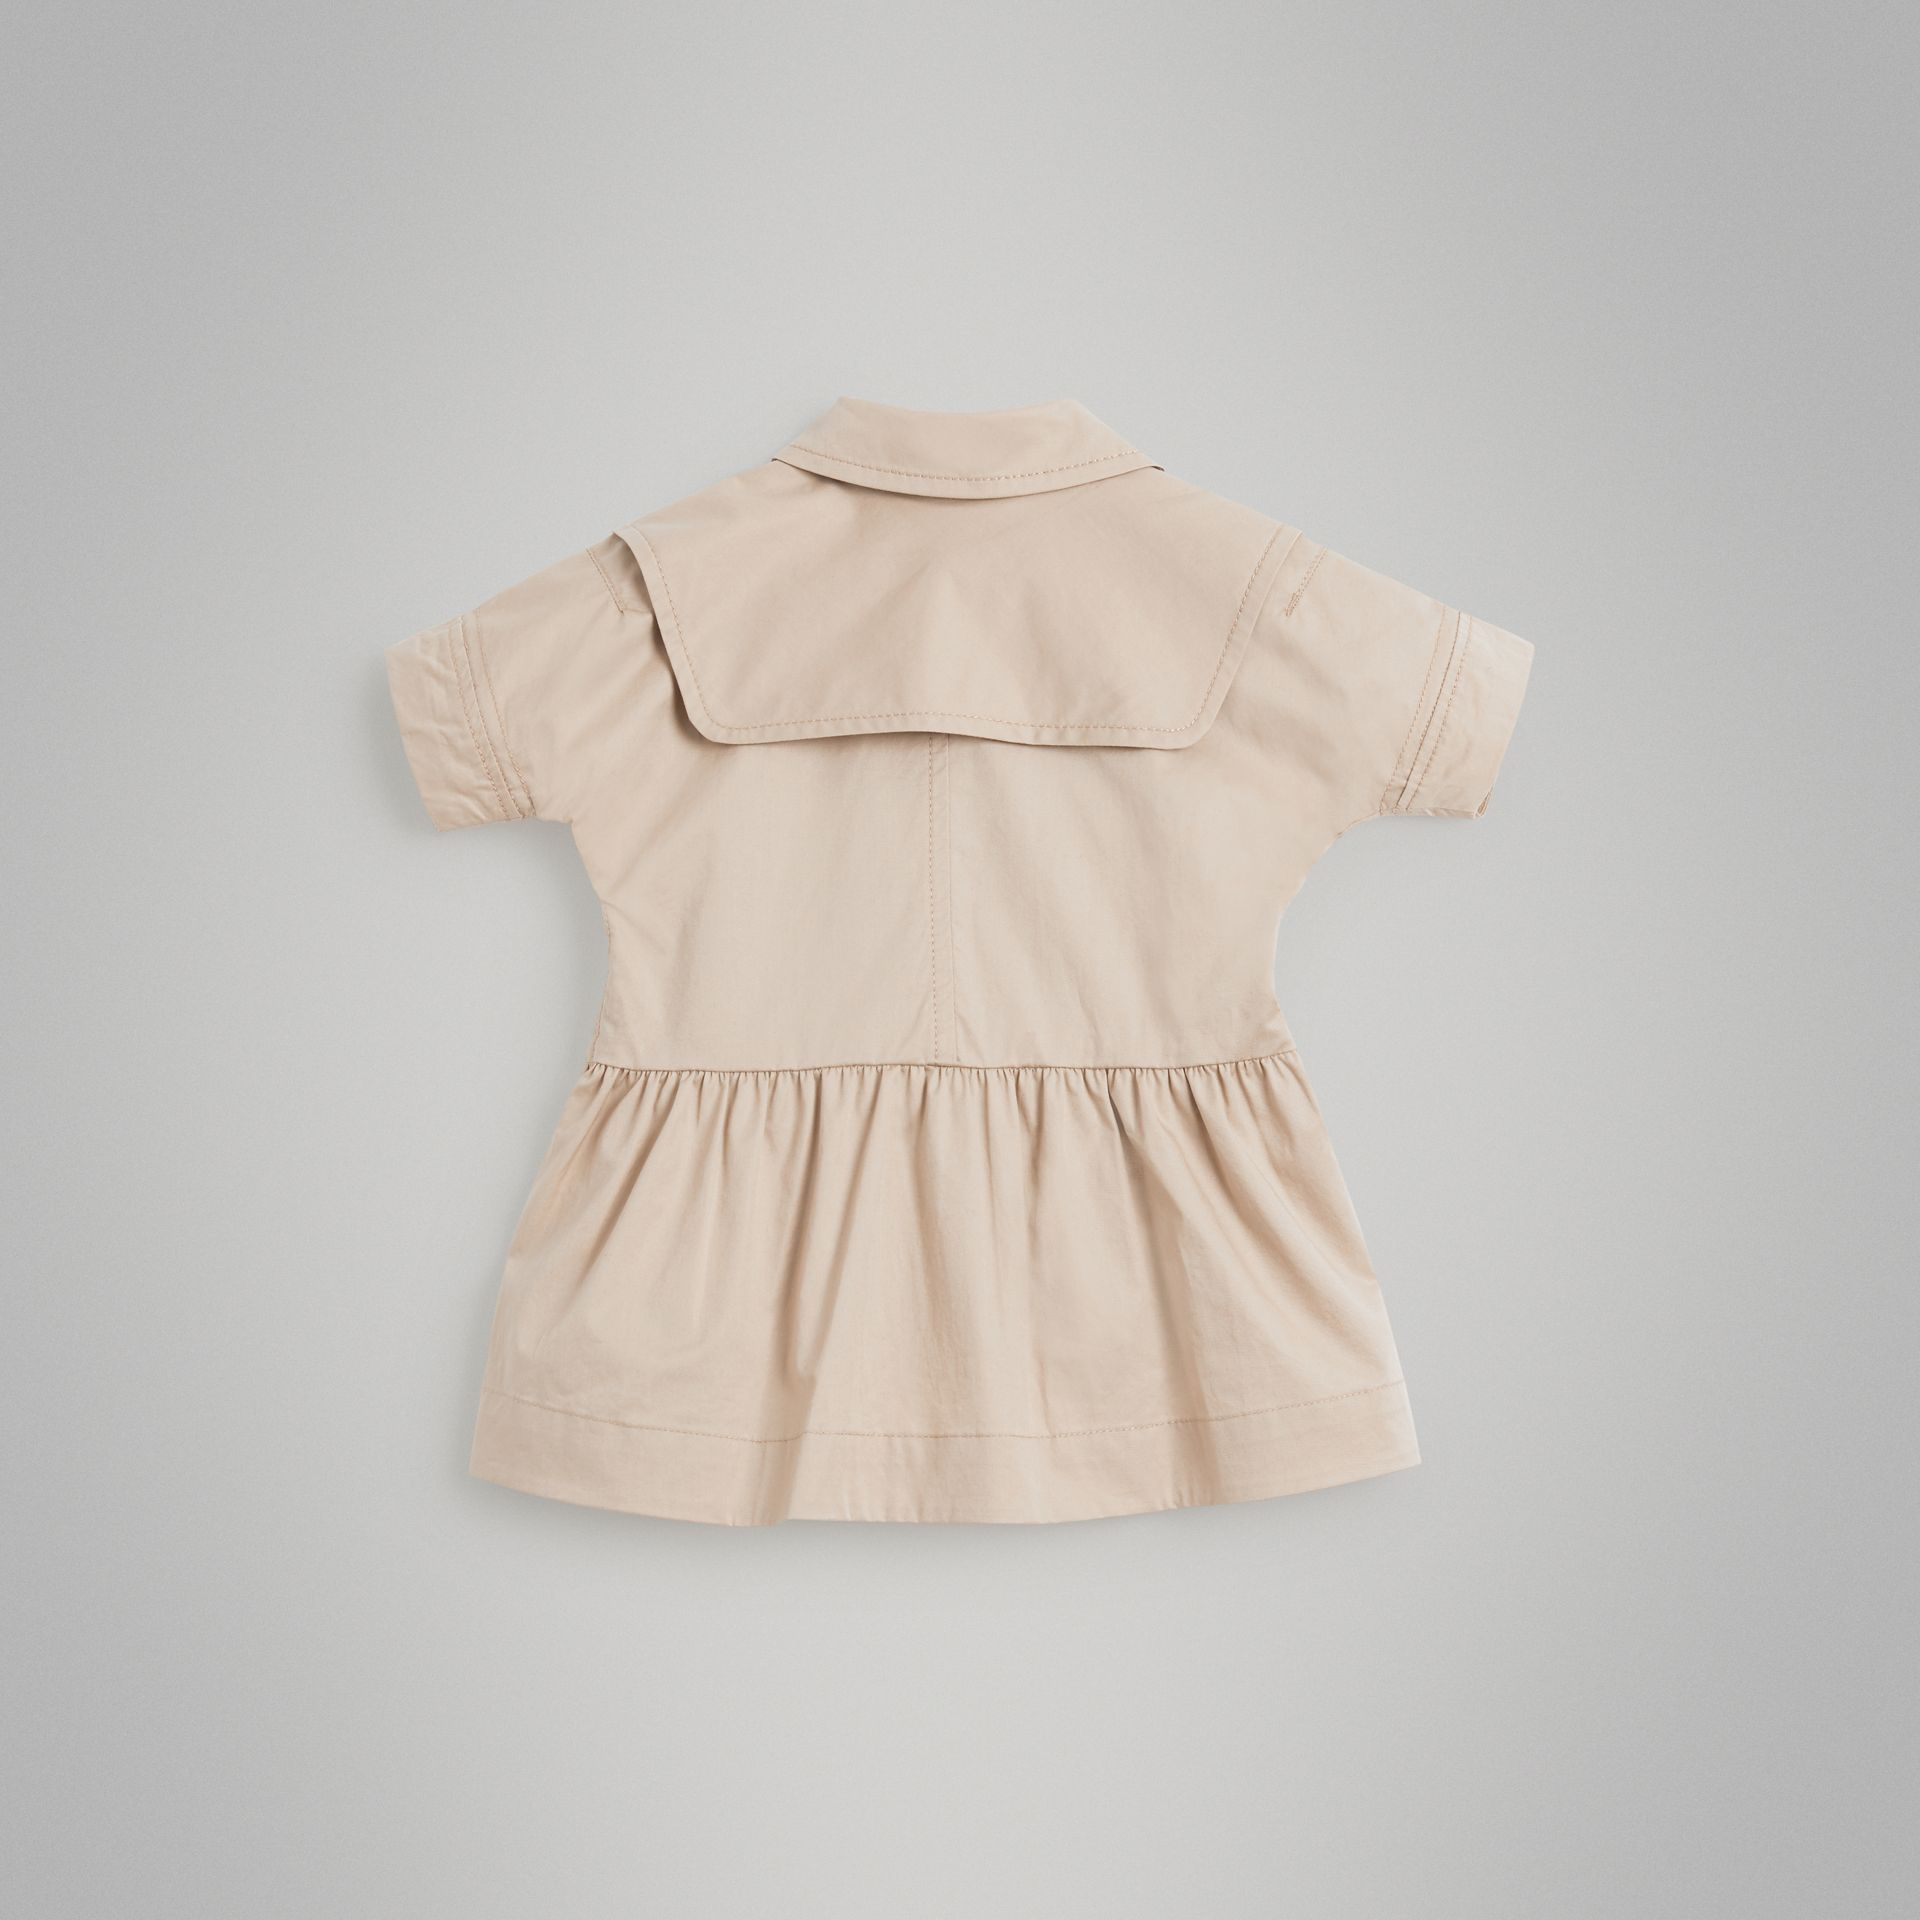 Robe trench en coton extensible (Miel) - Enfant | Burberry - photo de la galerie 3